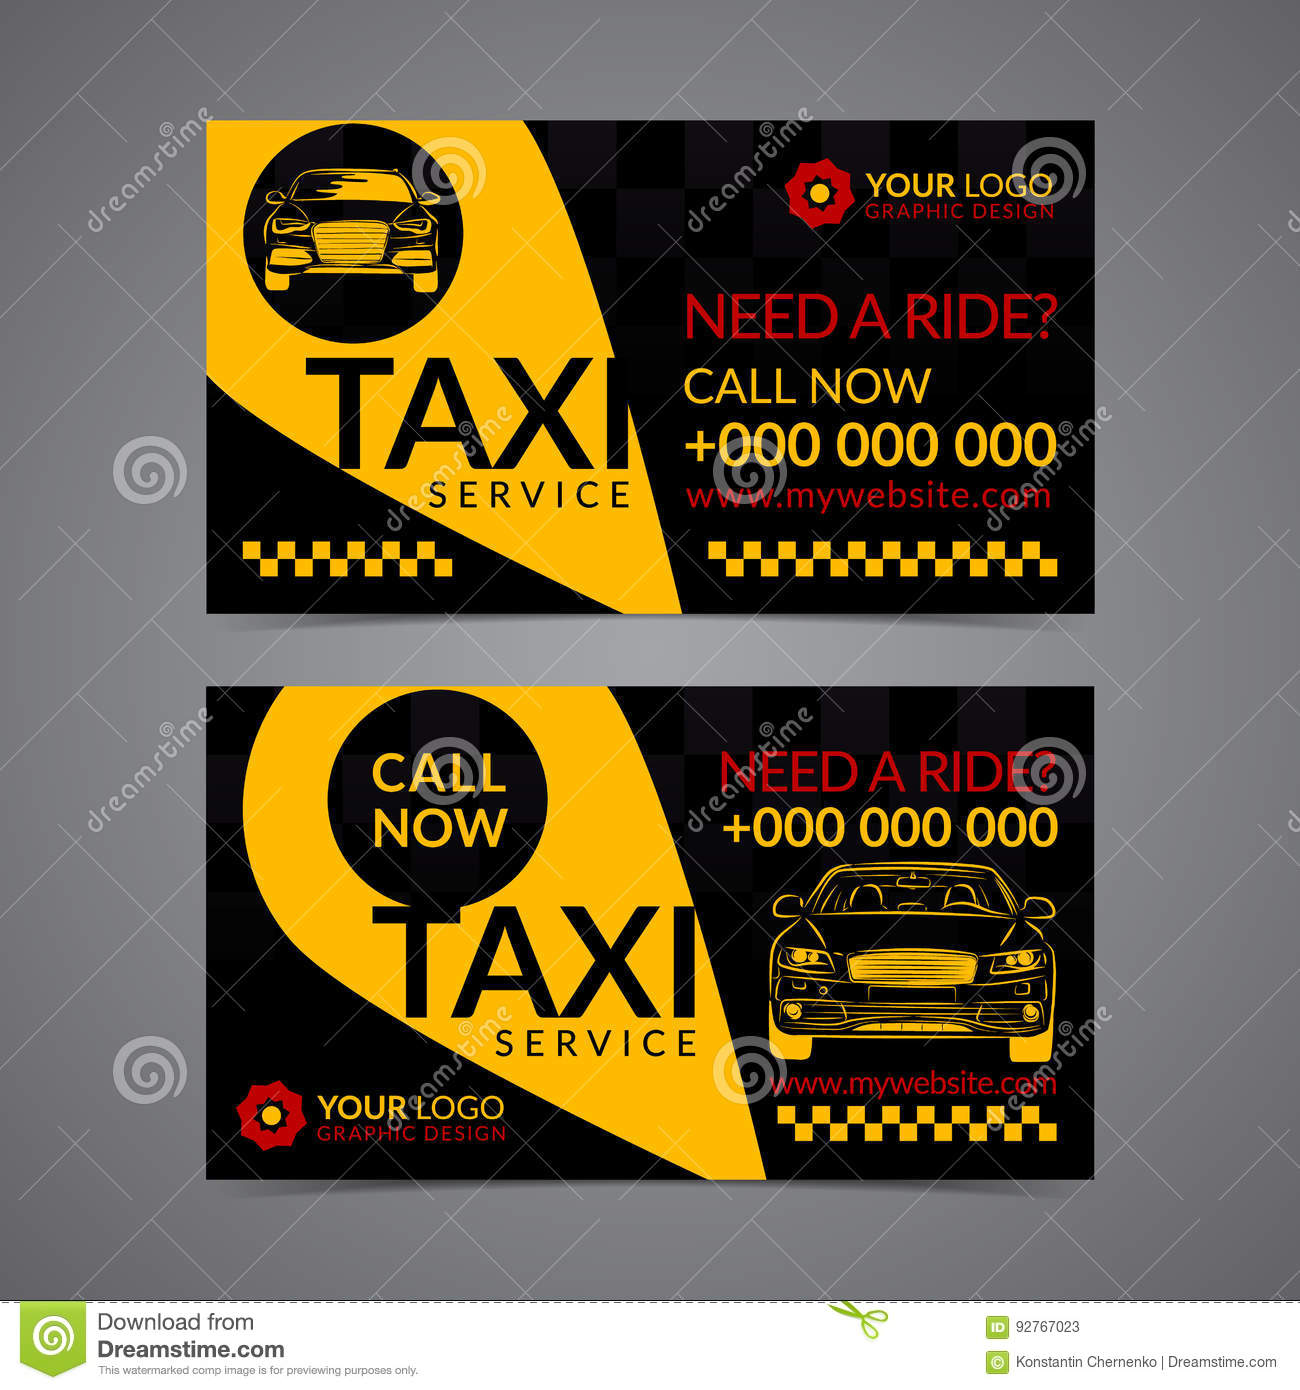 Taxi pickup service business card layout template create your own taxi pickup service business card layout template create your own business cards flashek Image collections